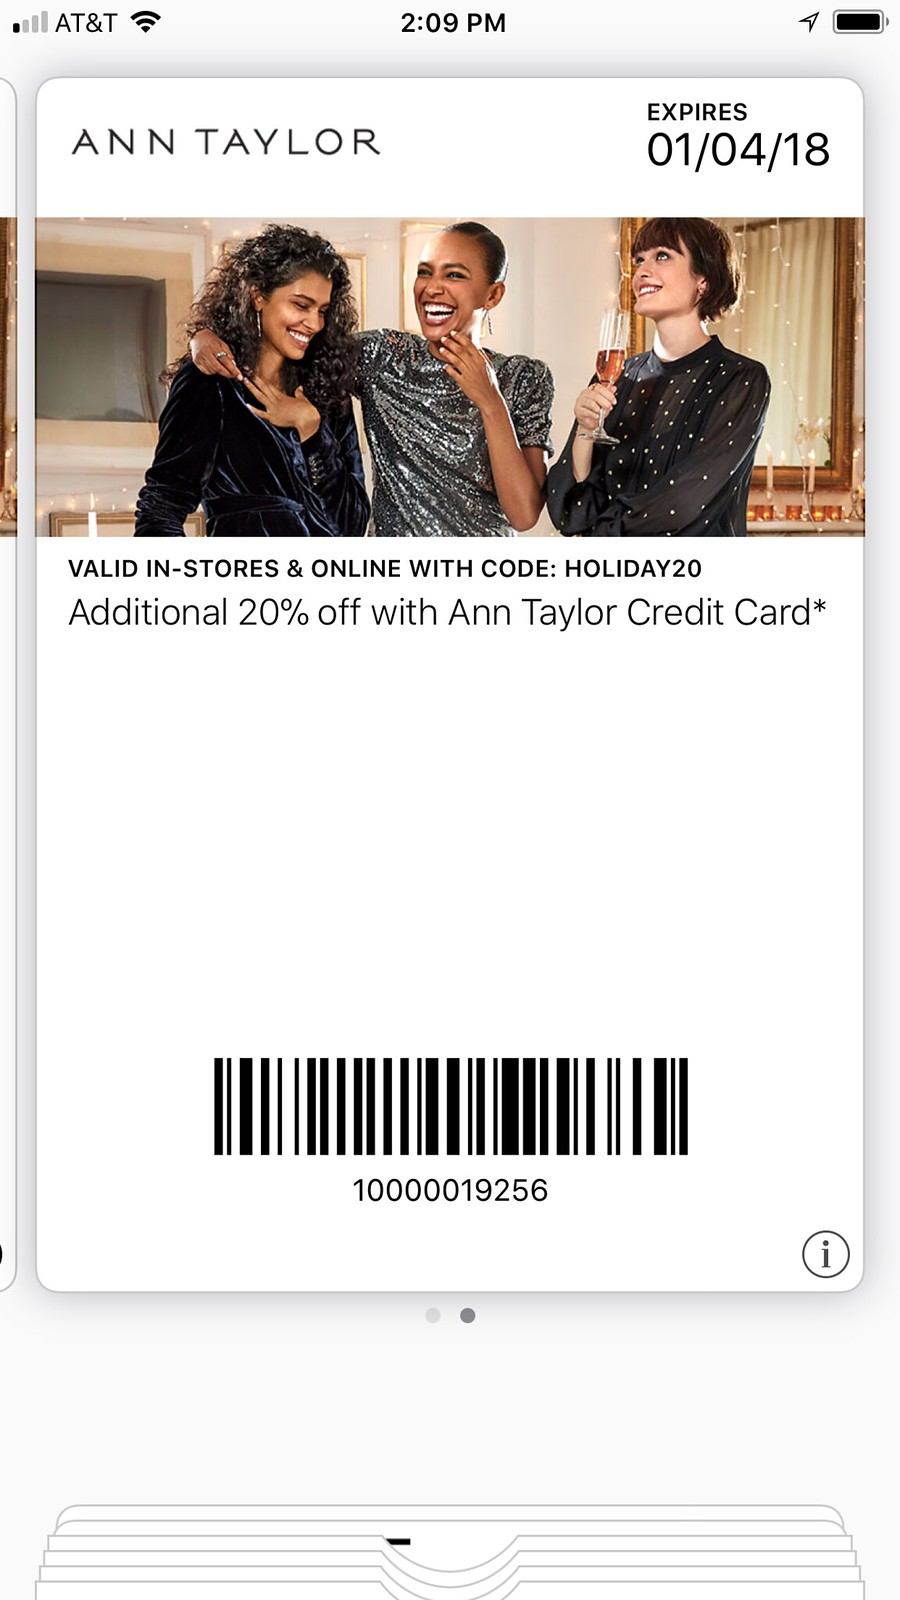 Ann Taylor Cardmember Holiday Savings - Valid through January 4, 2018